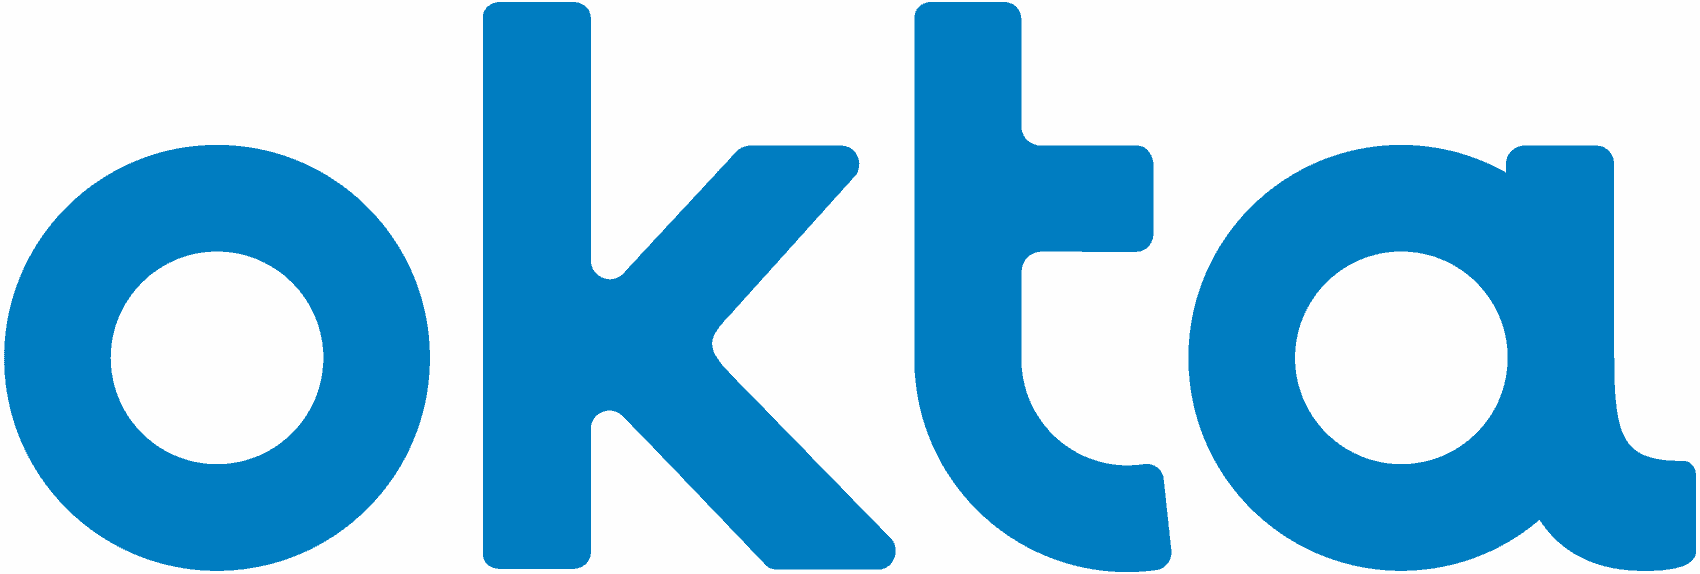 Okta Partner and Solution Provider